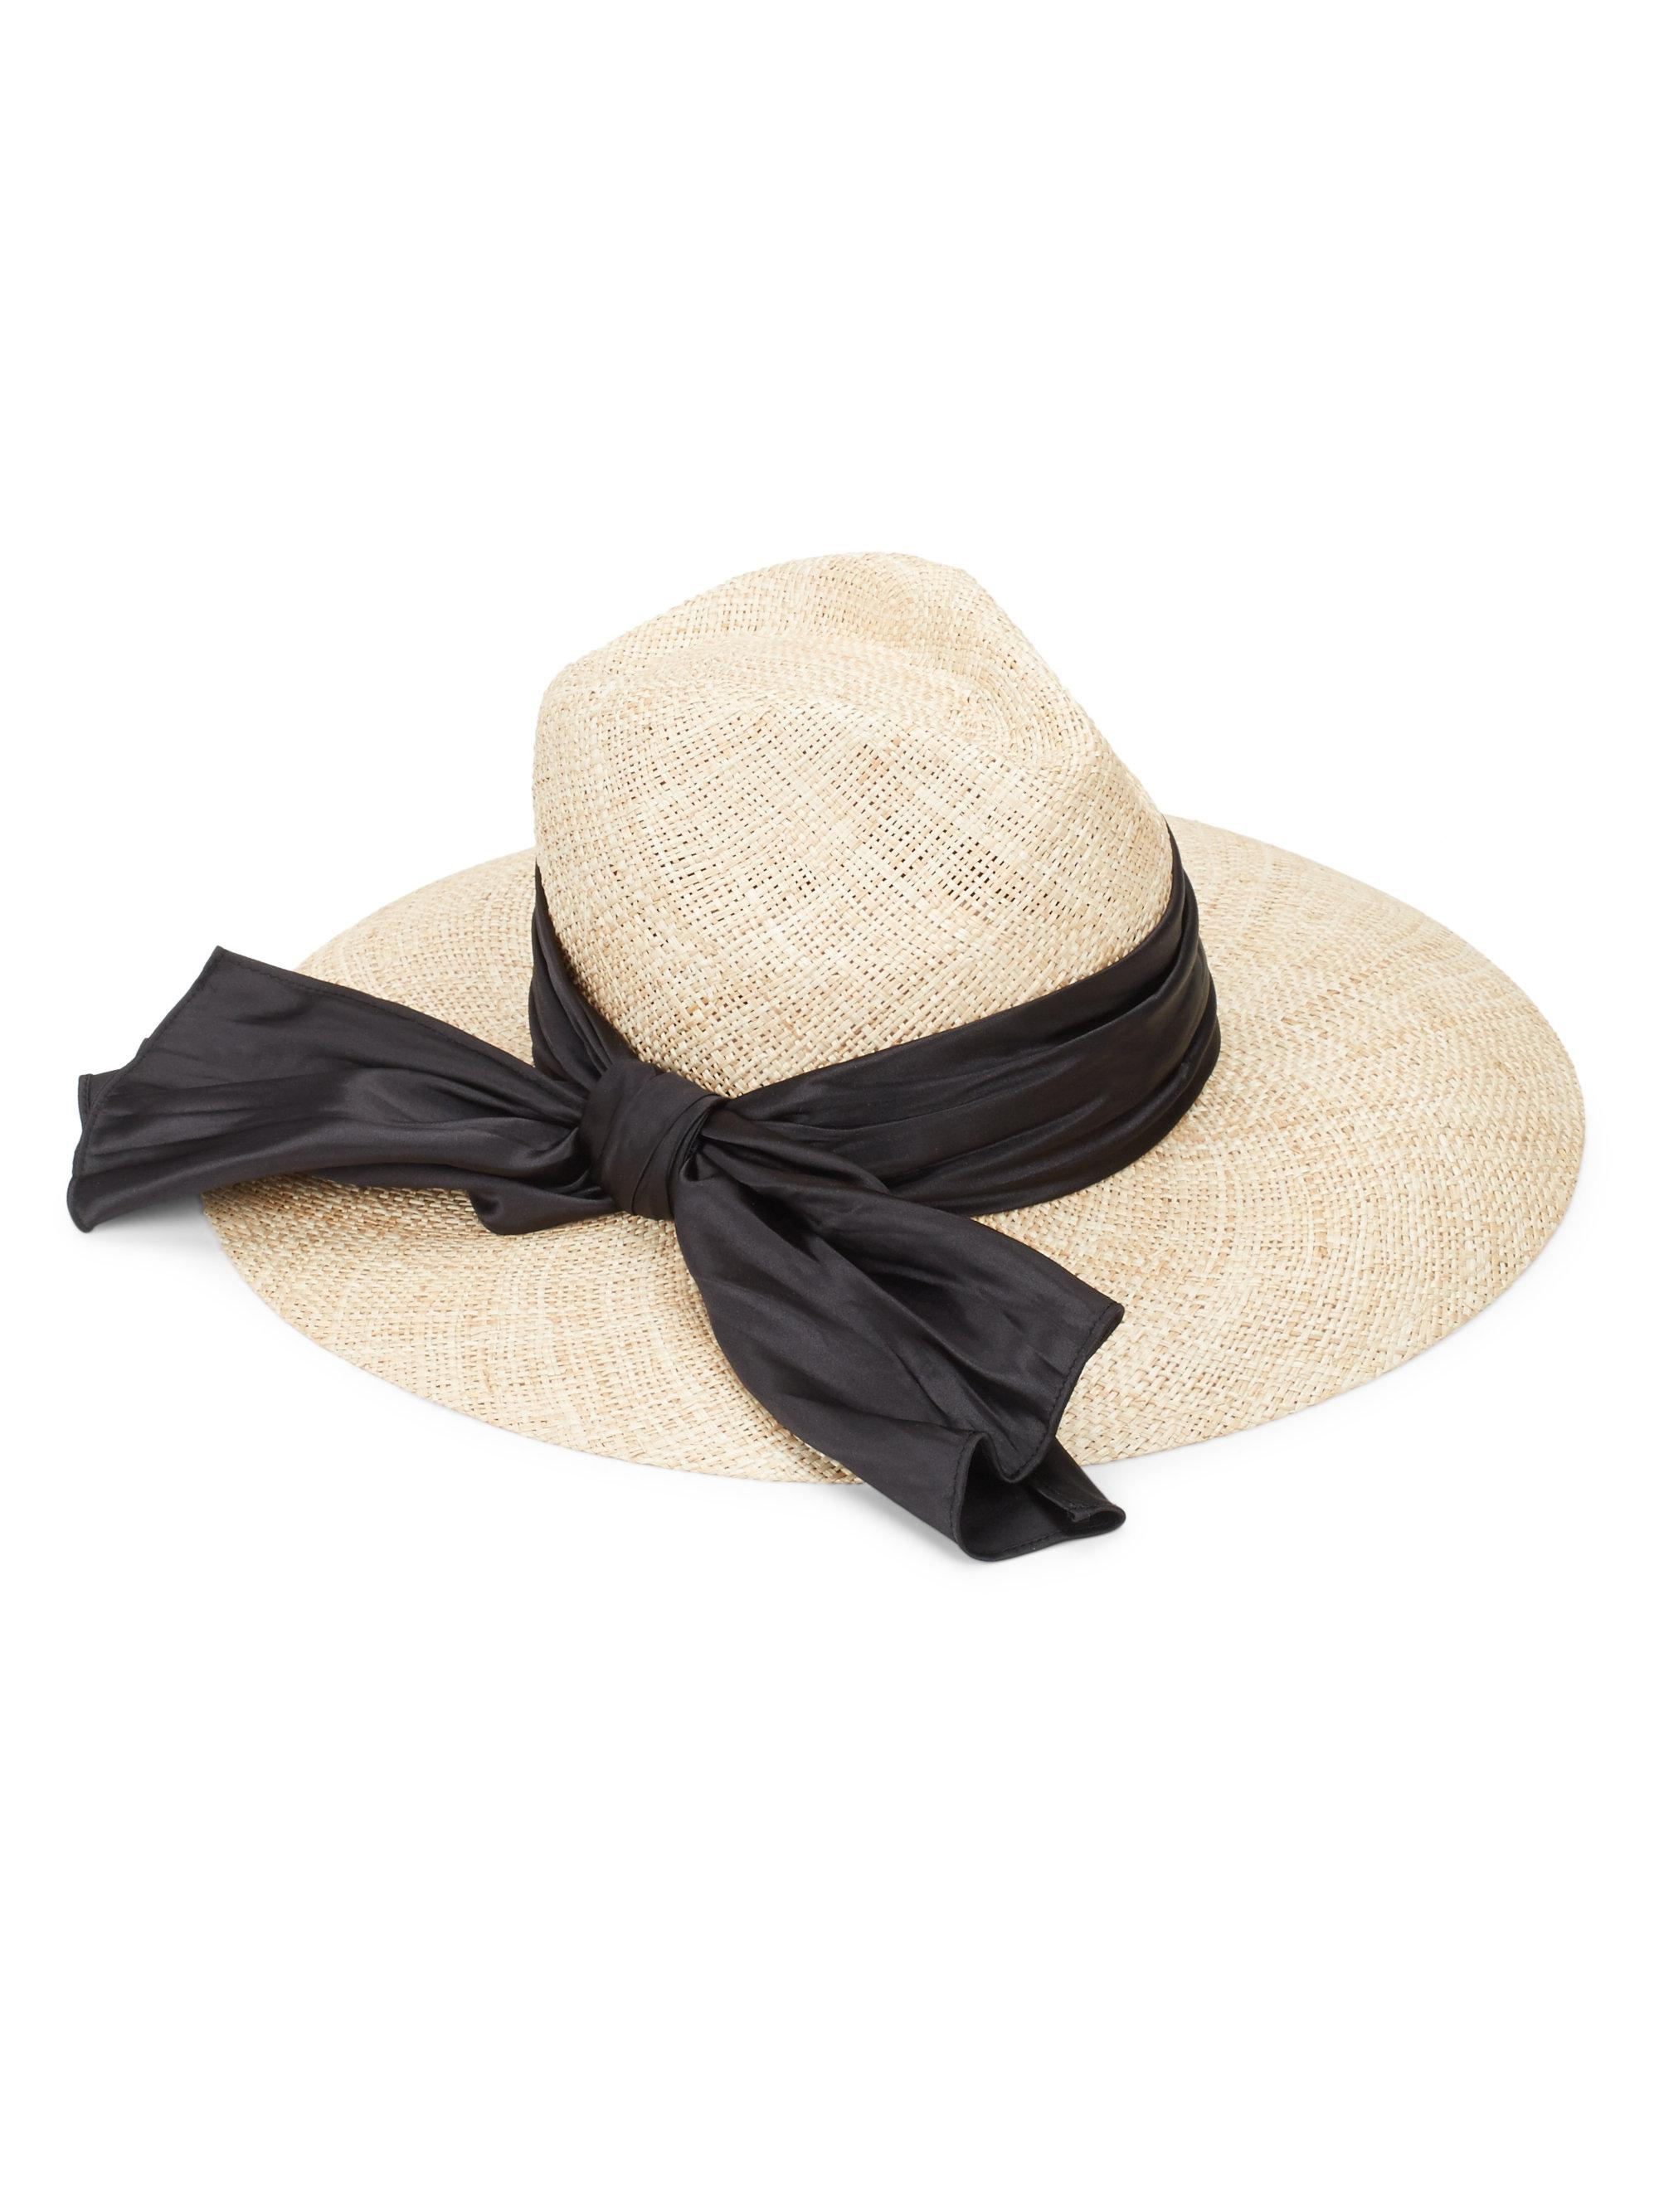 36300e6f65fe7 Eugenia Kim Emmanuelle Undercover Straw Fedora in Natural - Lyst